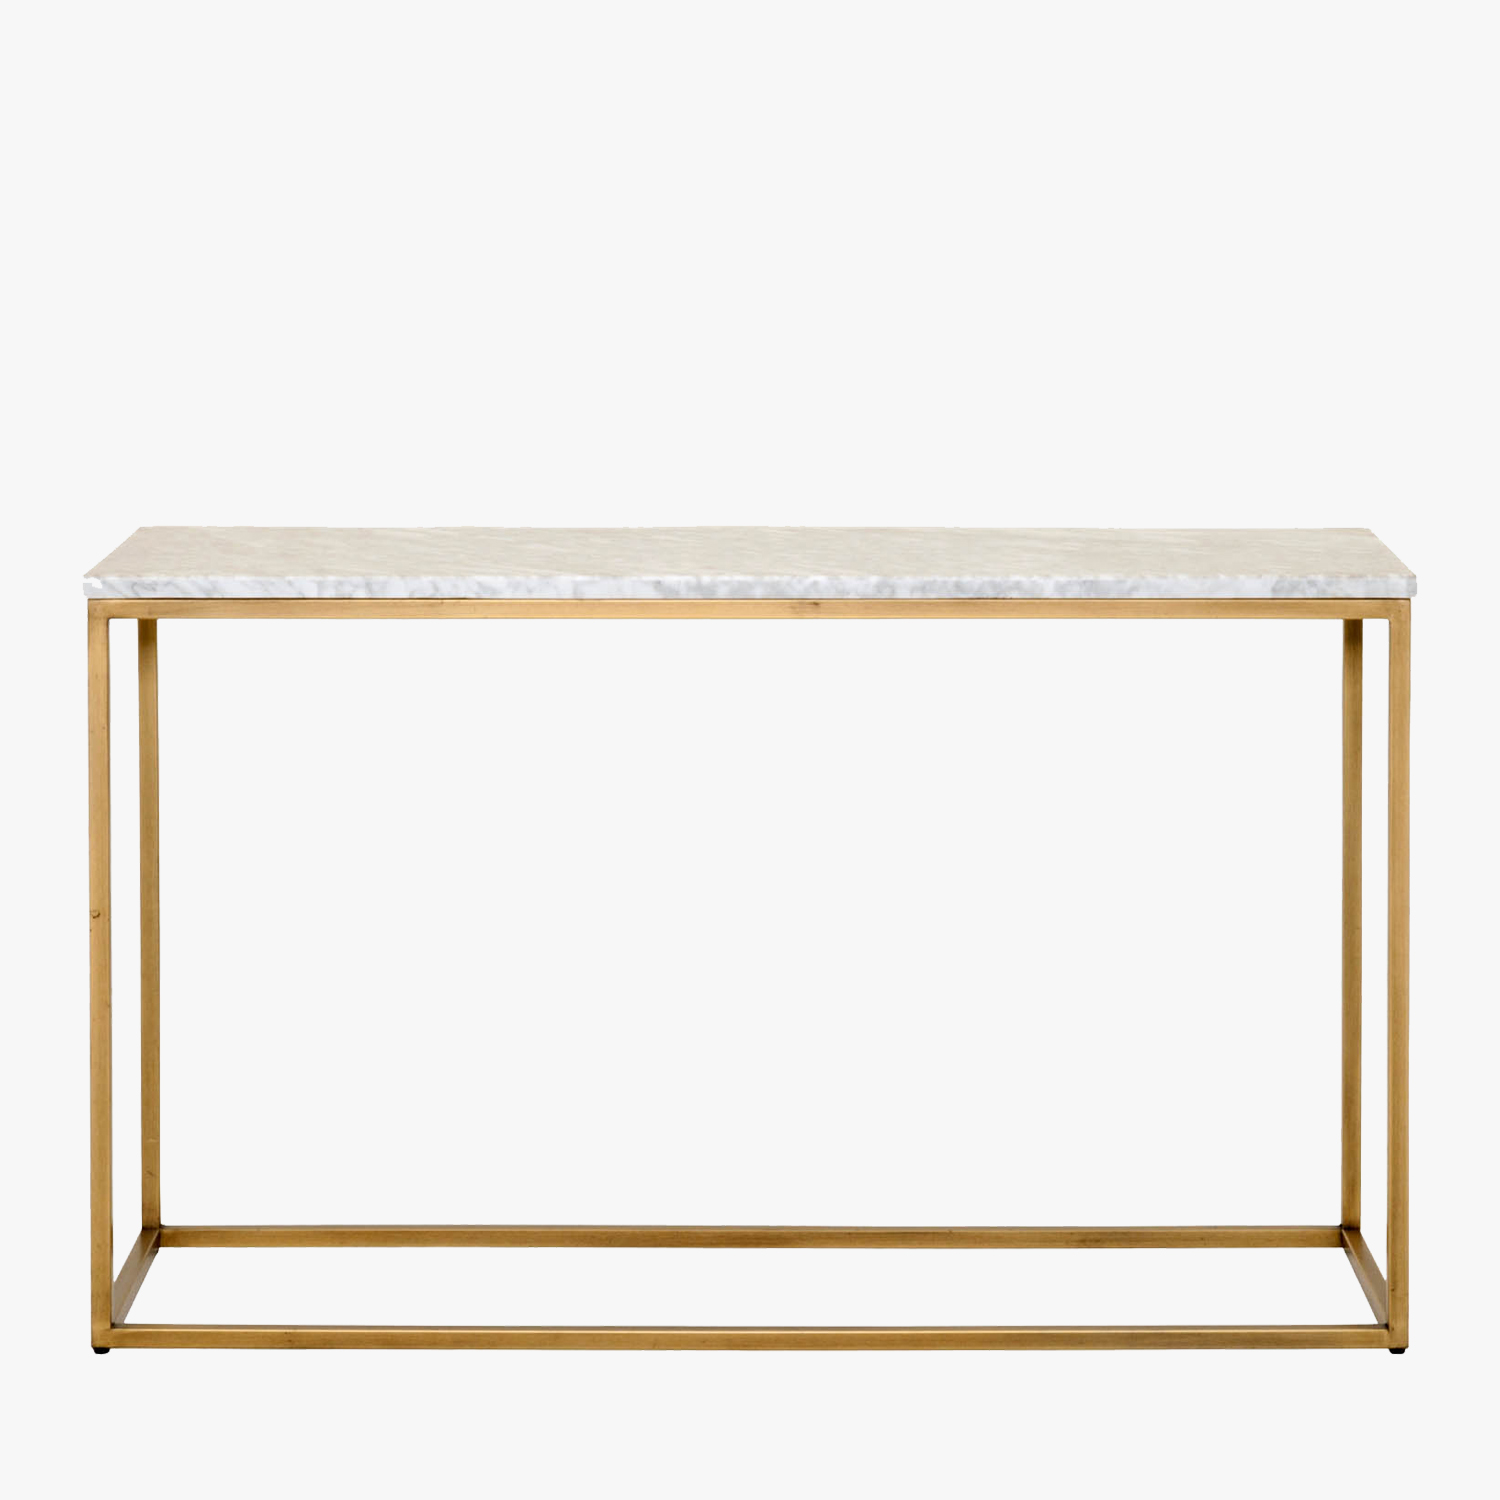 carrara marble console table furniture dear keaton threshold top accent ikea round end target kids rugs leick mission patio umbrella sofa side with storage small brown teal ethan